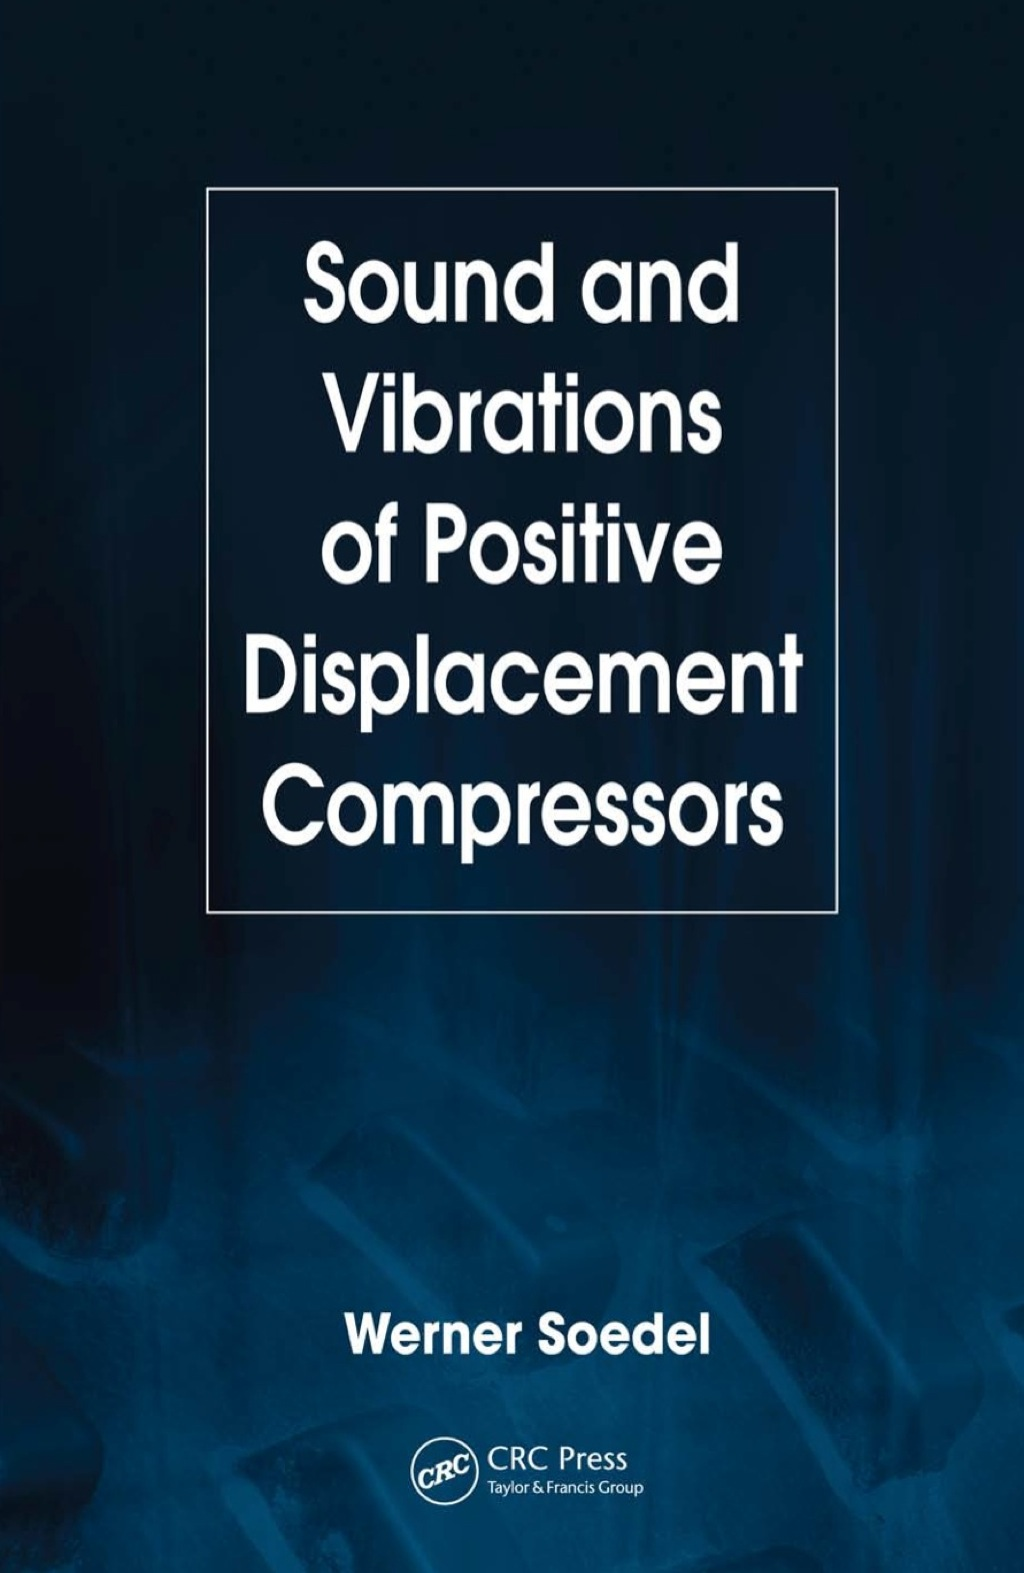 Sound and Vibrations of Positive Displacement Compressors (ebook) eBooks